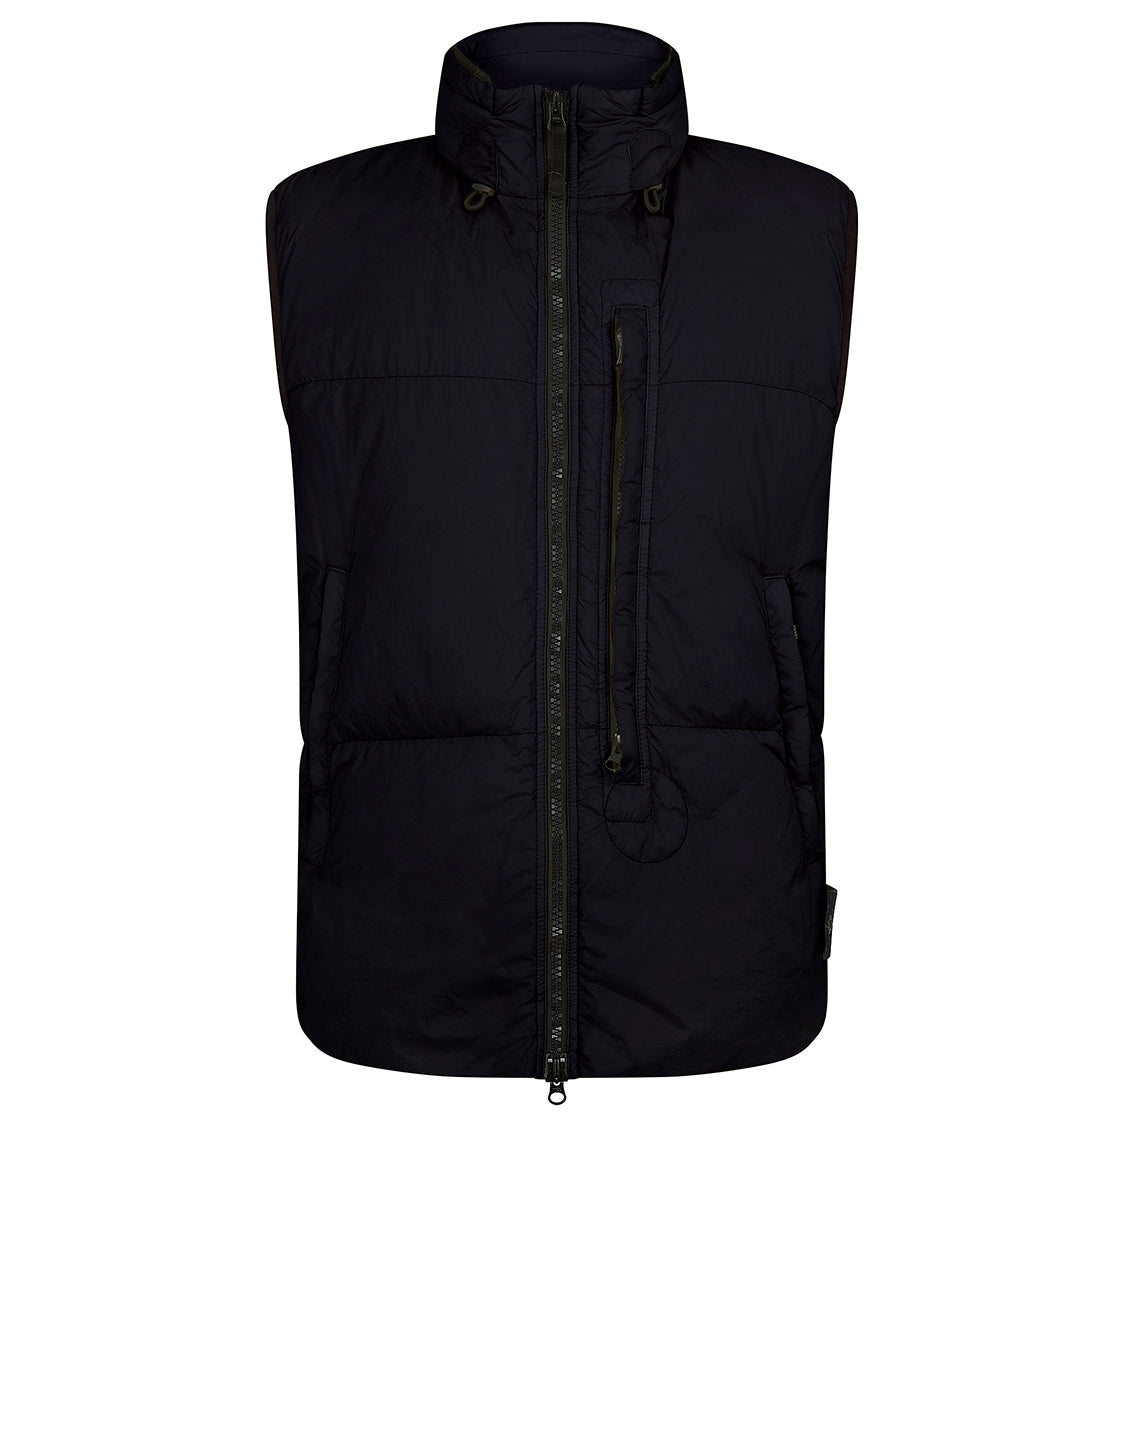 G0123 Garment Dyed Crinkle Reps Ny Down Vest in Navy